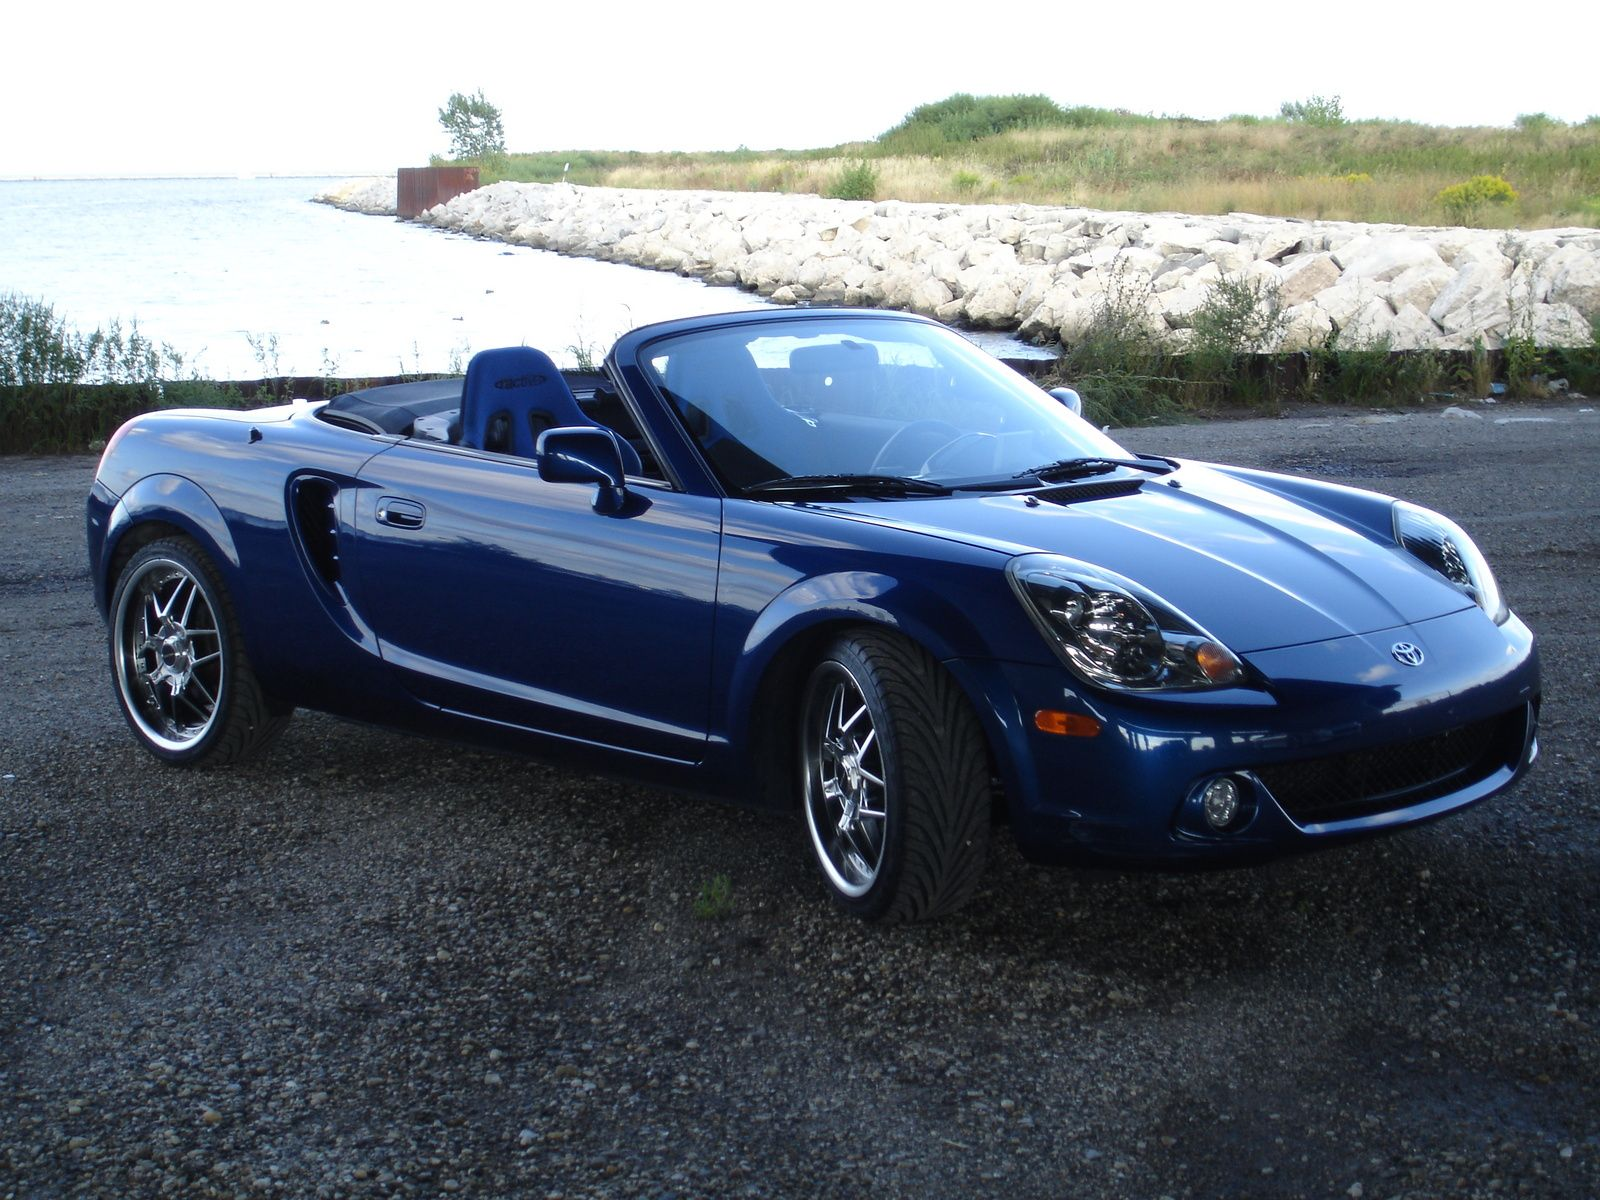 2003 toyota mr2 spyder 138 hp 0 60 7 seconds top speed 129 mph good used one 39 s are. Black Bedroom Furniture Sets. Home Design Ideas